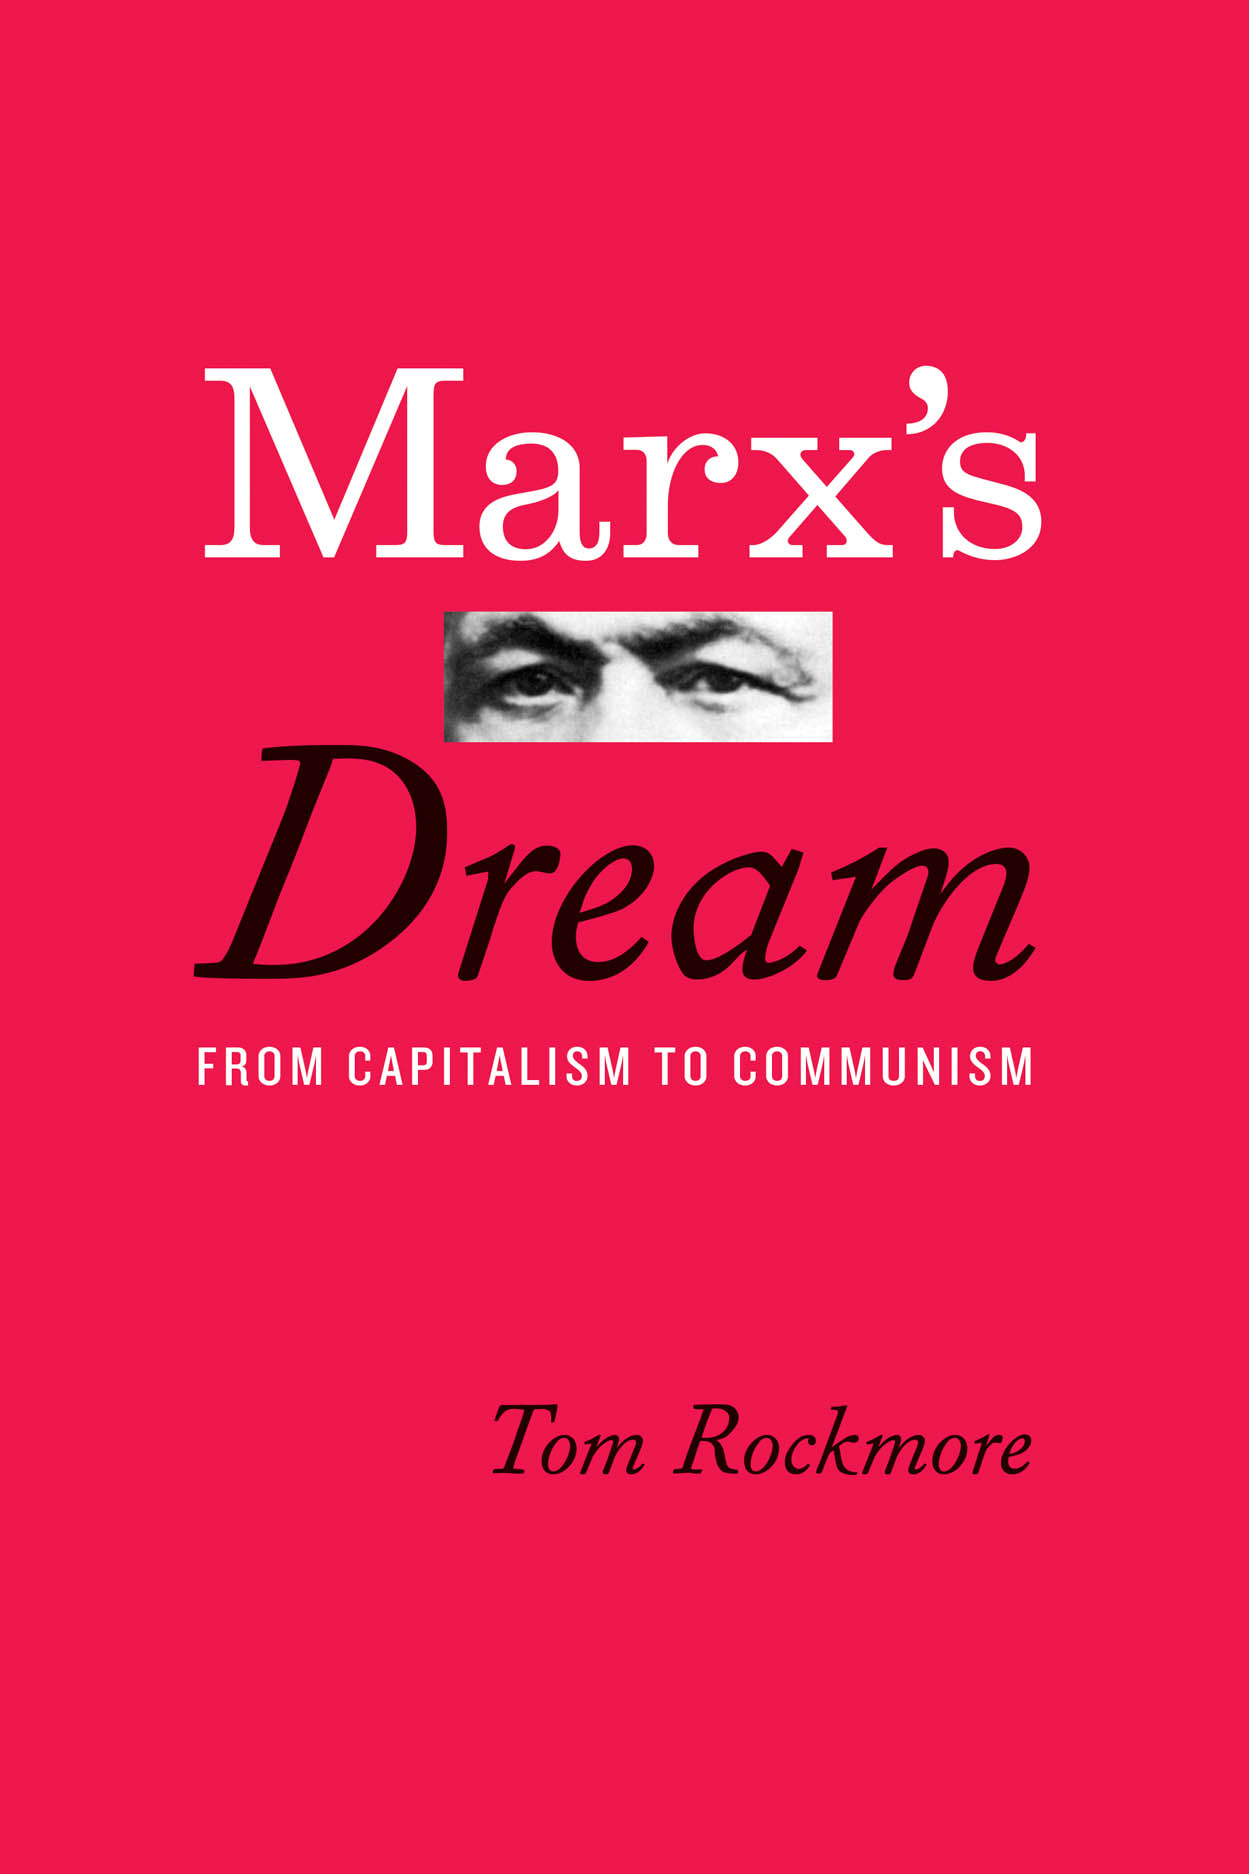 Marx's Dream: From Capitalism to Communism